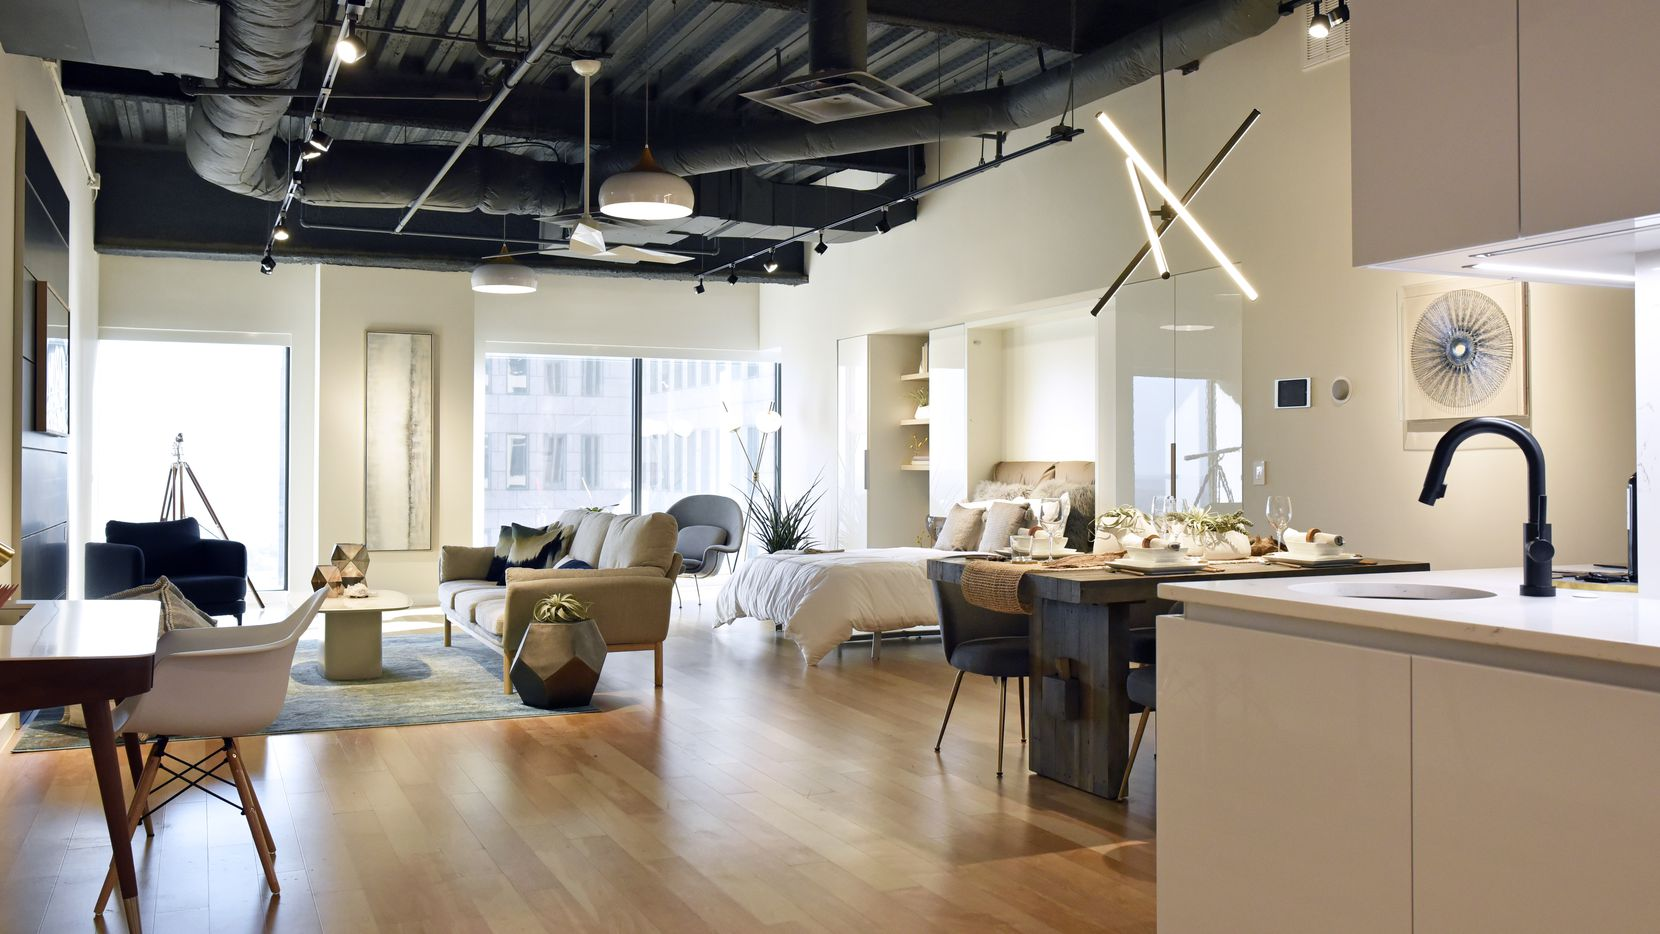 Bluelofts' model downtown Dallas apartment is about 900 square feet.